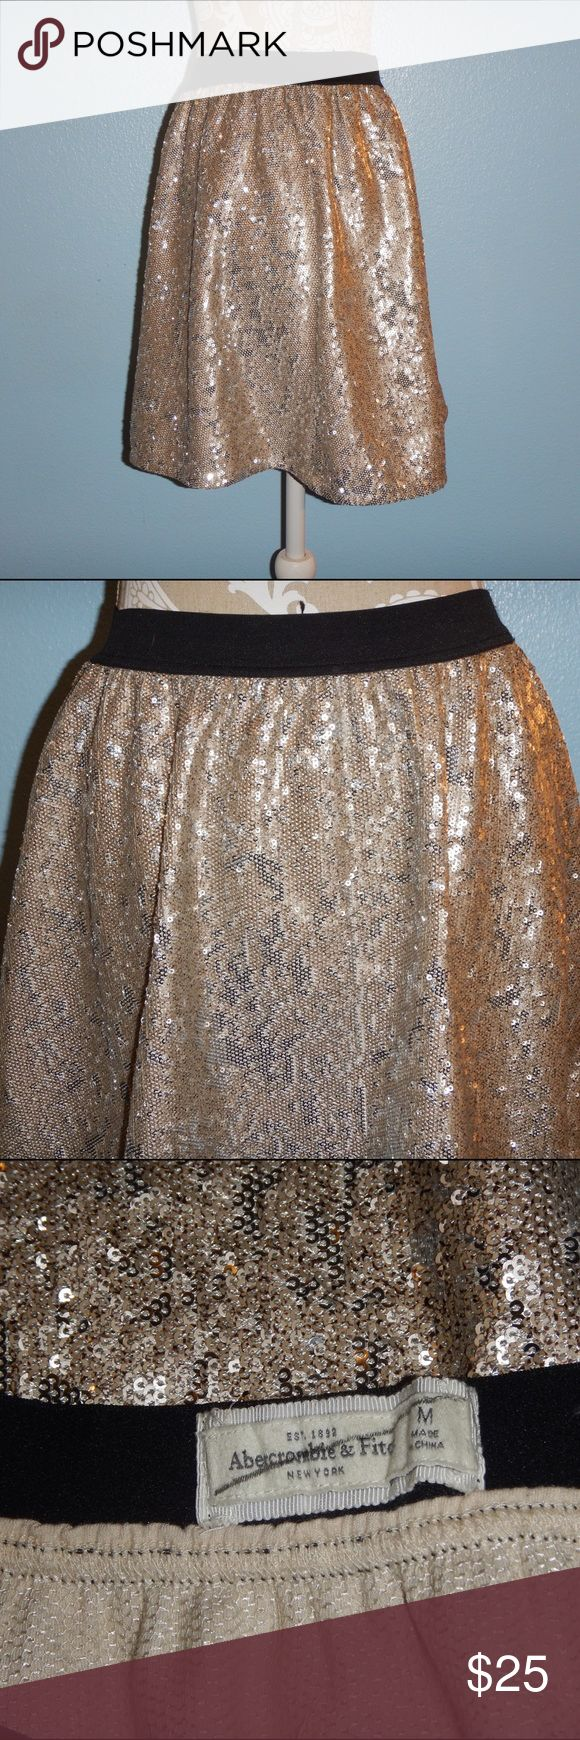 Abercrombie and Fitch skater skirt Abercrombie and Fitch skater elastic waist gold sequin skirt size medium waste 13 inches flat length 16.5 inches Abercrombie & Fitch Skirts